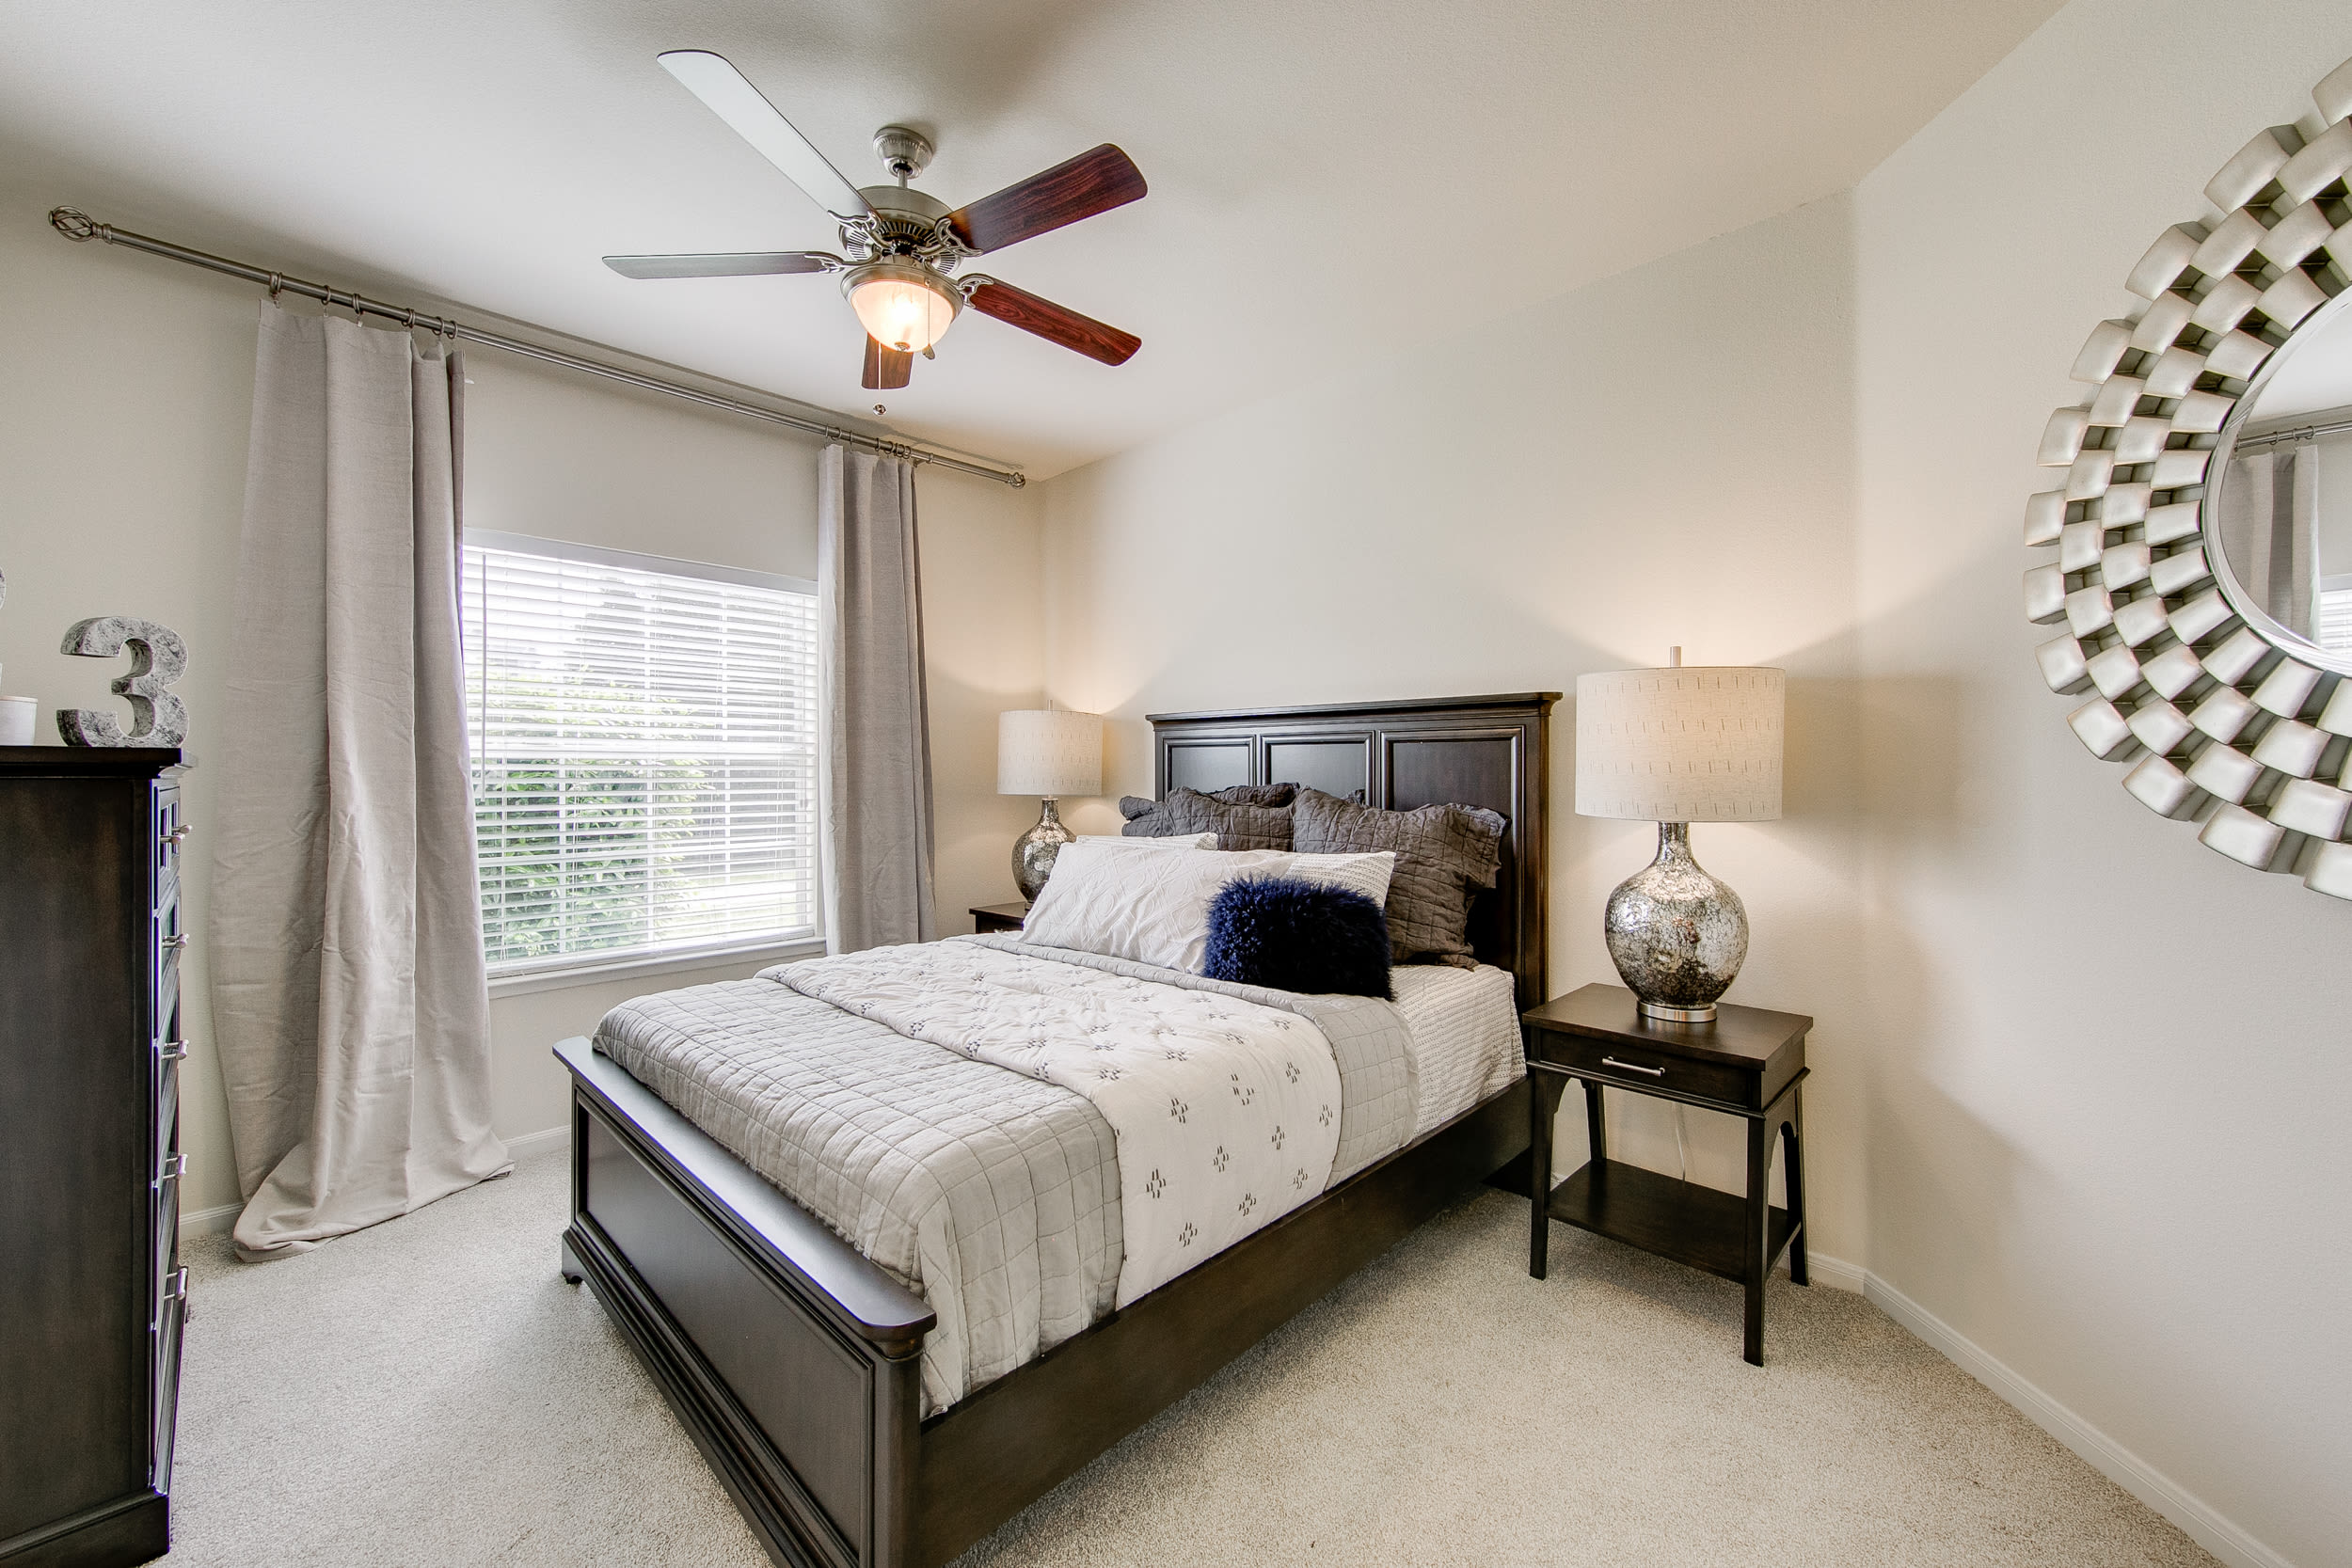 Spacious living area with ceiling fan at The View at Lakeside in Lewisville, Texas